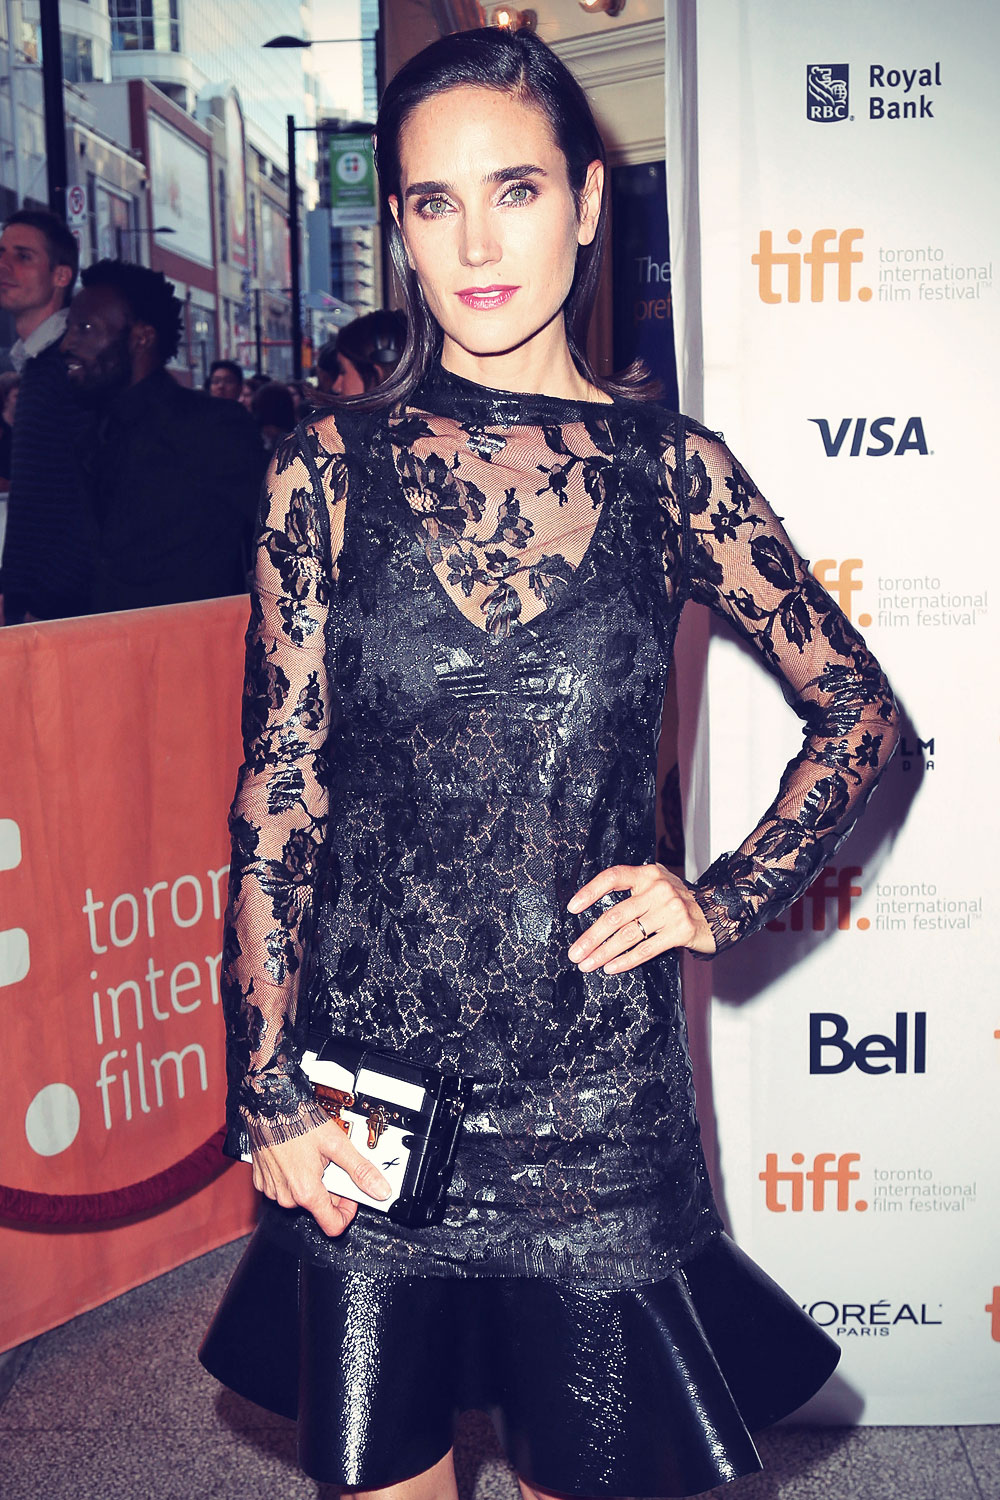 Jennifer Connelly attends Shelter premiere at TIFF